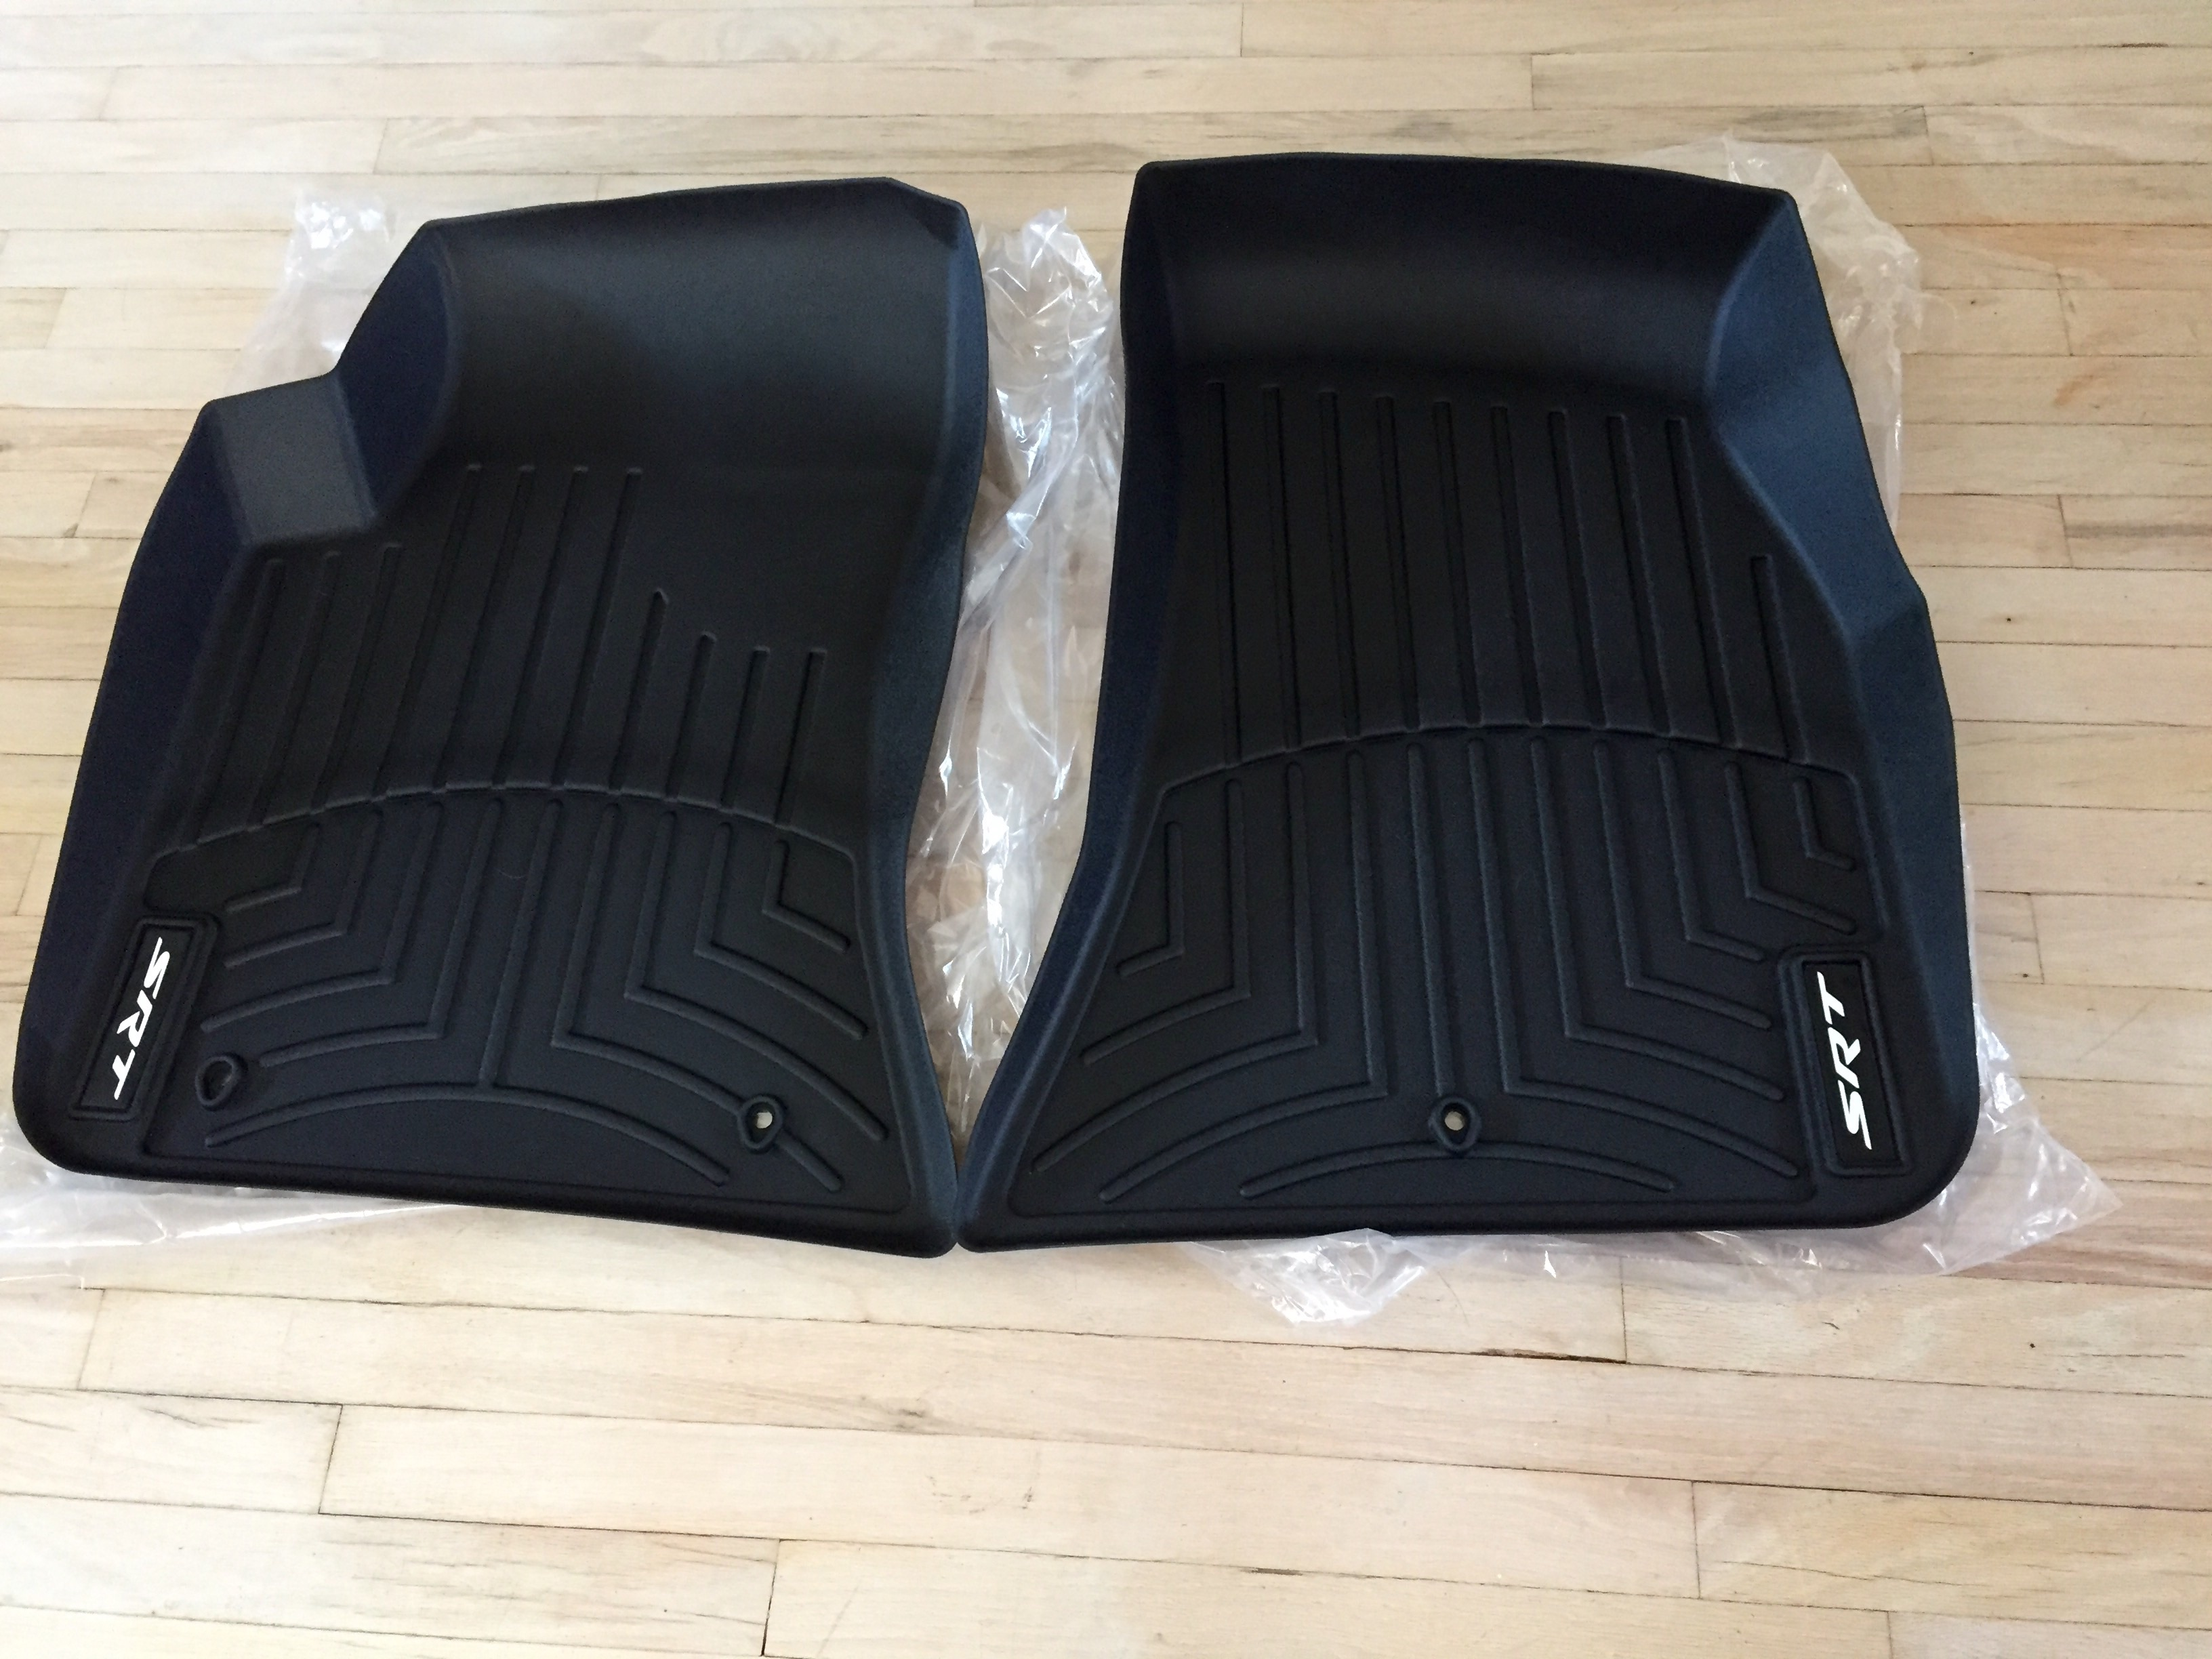 liners version mats weathertech image floor page size larger or name img views forums husky click for diesel forum